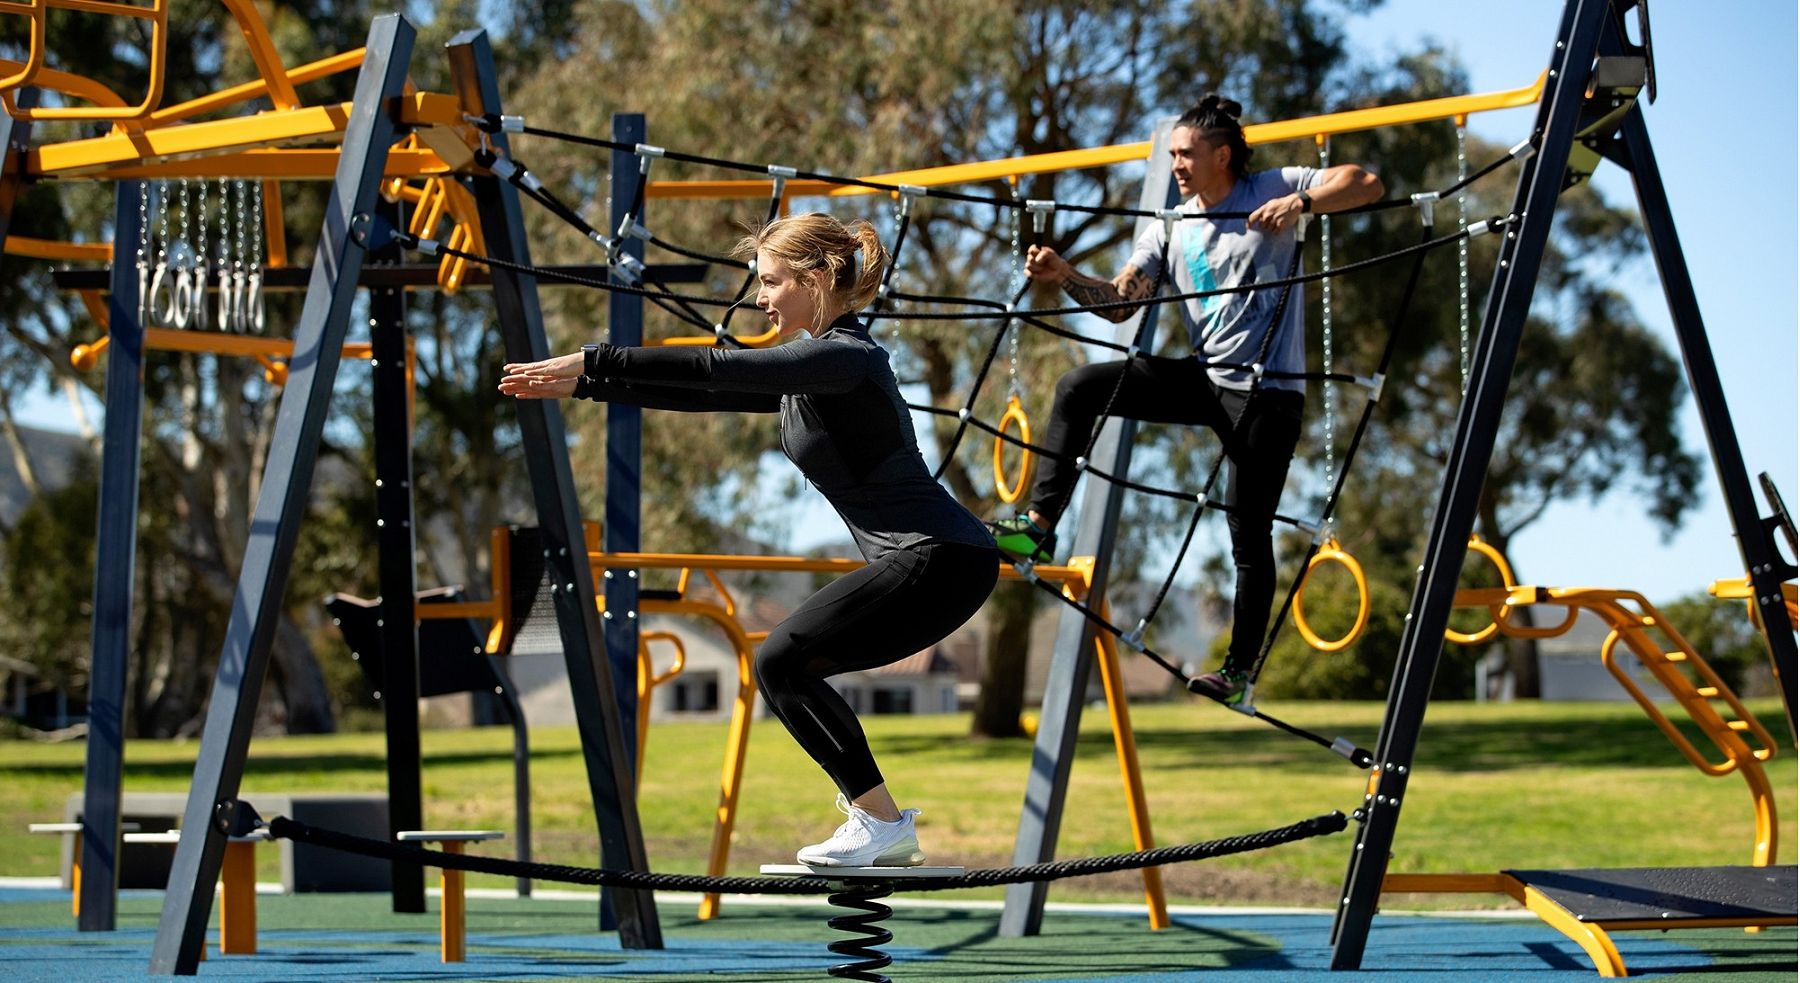 THRIVE 900 and GTfit Outdoor Fitness Equipment